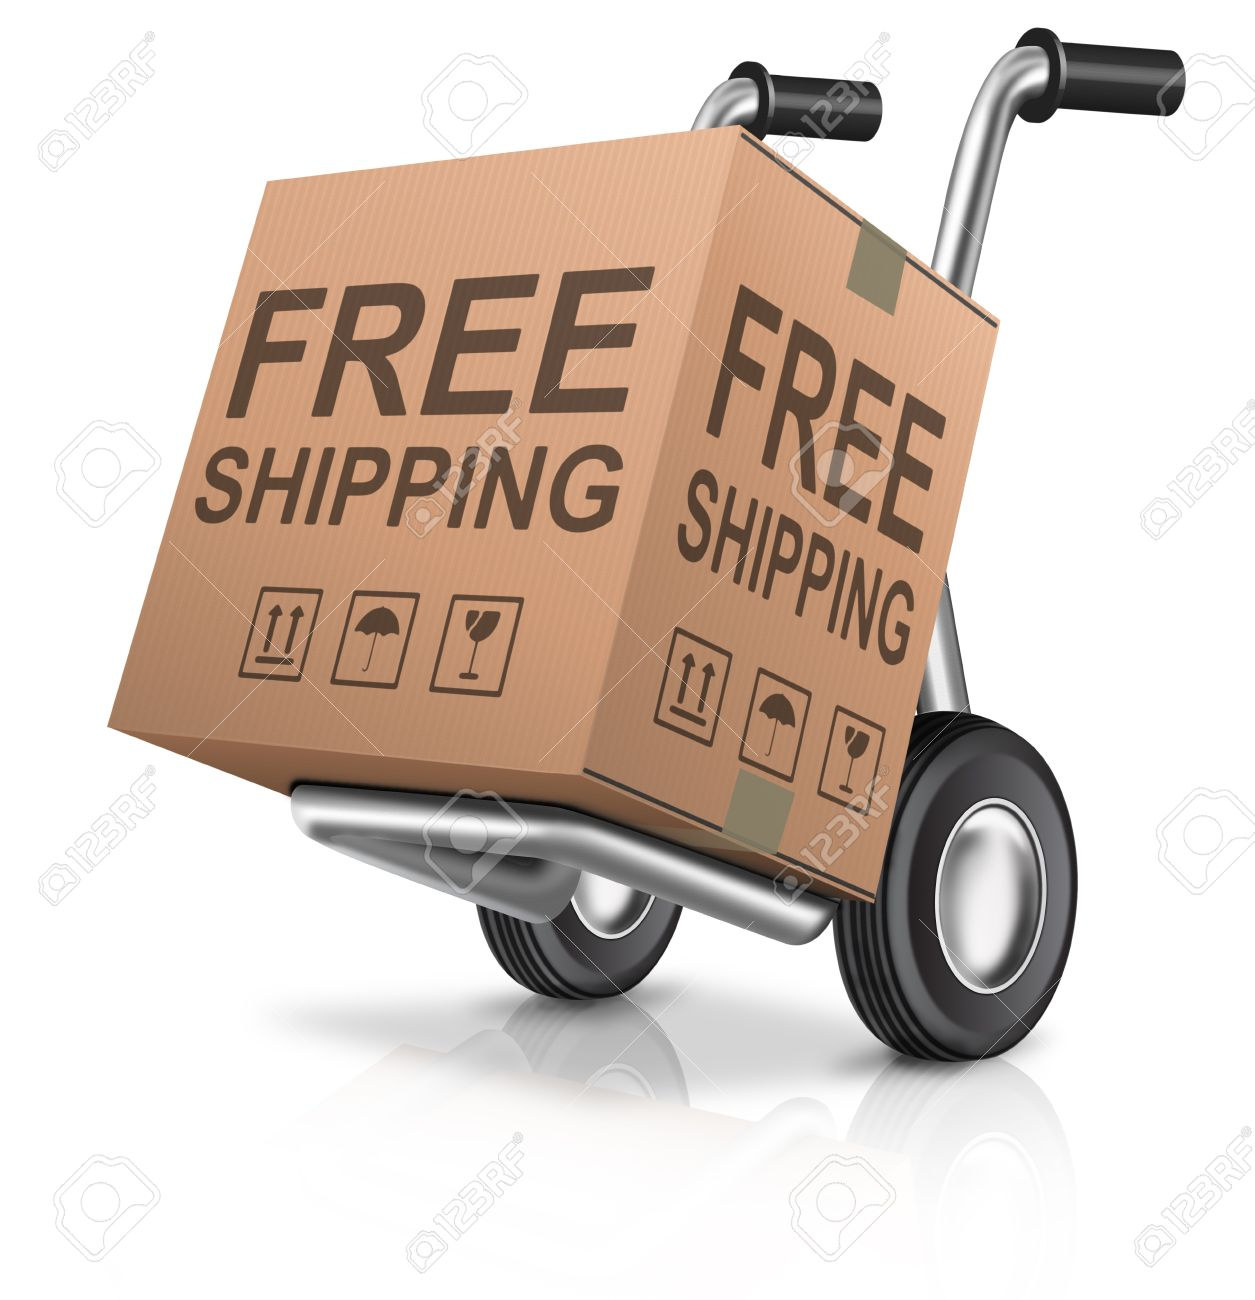 free shipping or delivery for online order of a web shop cardboard box with text ecommerce icon sending package concept for internet shopping Stock Photo - 13222524